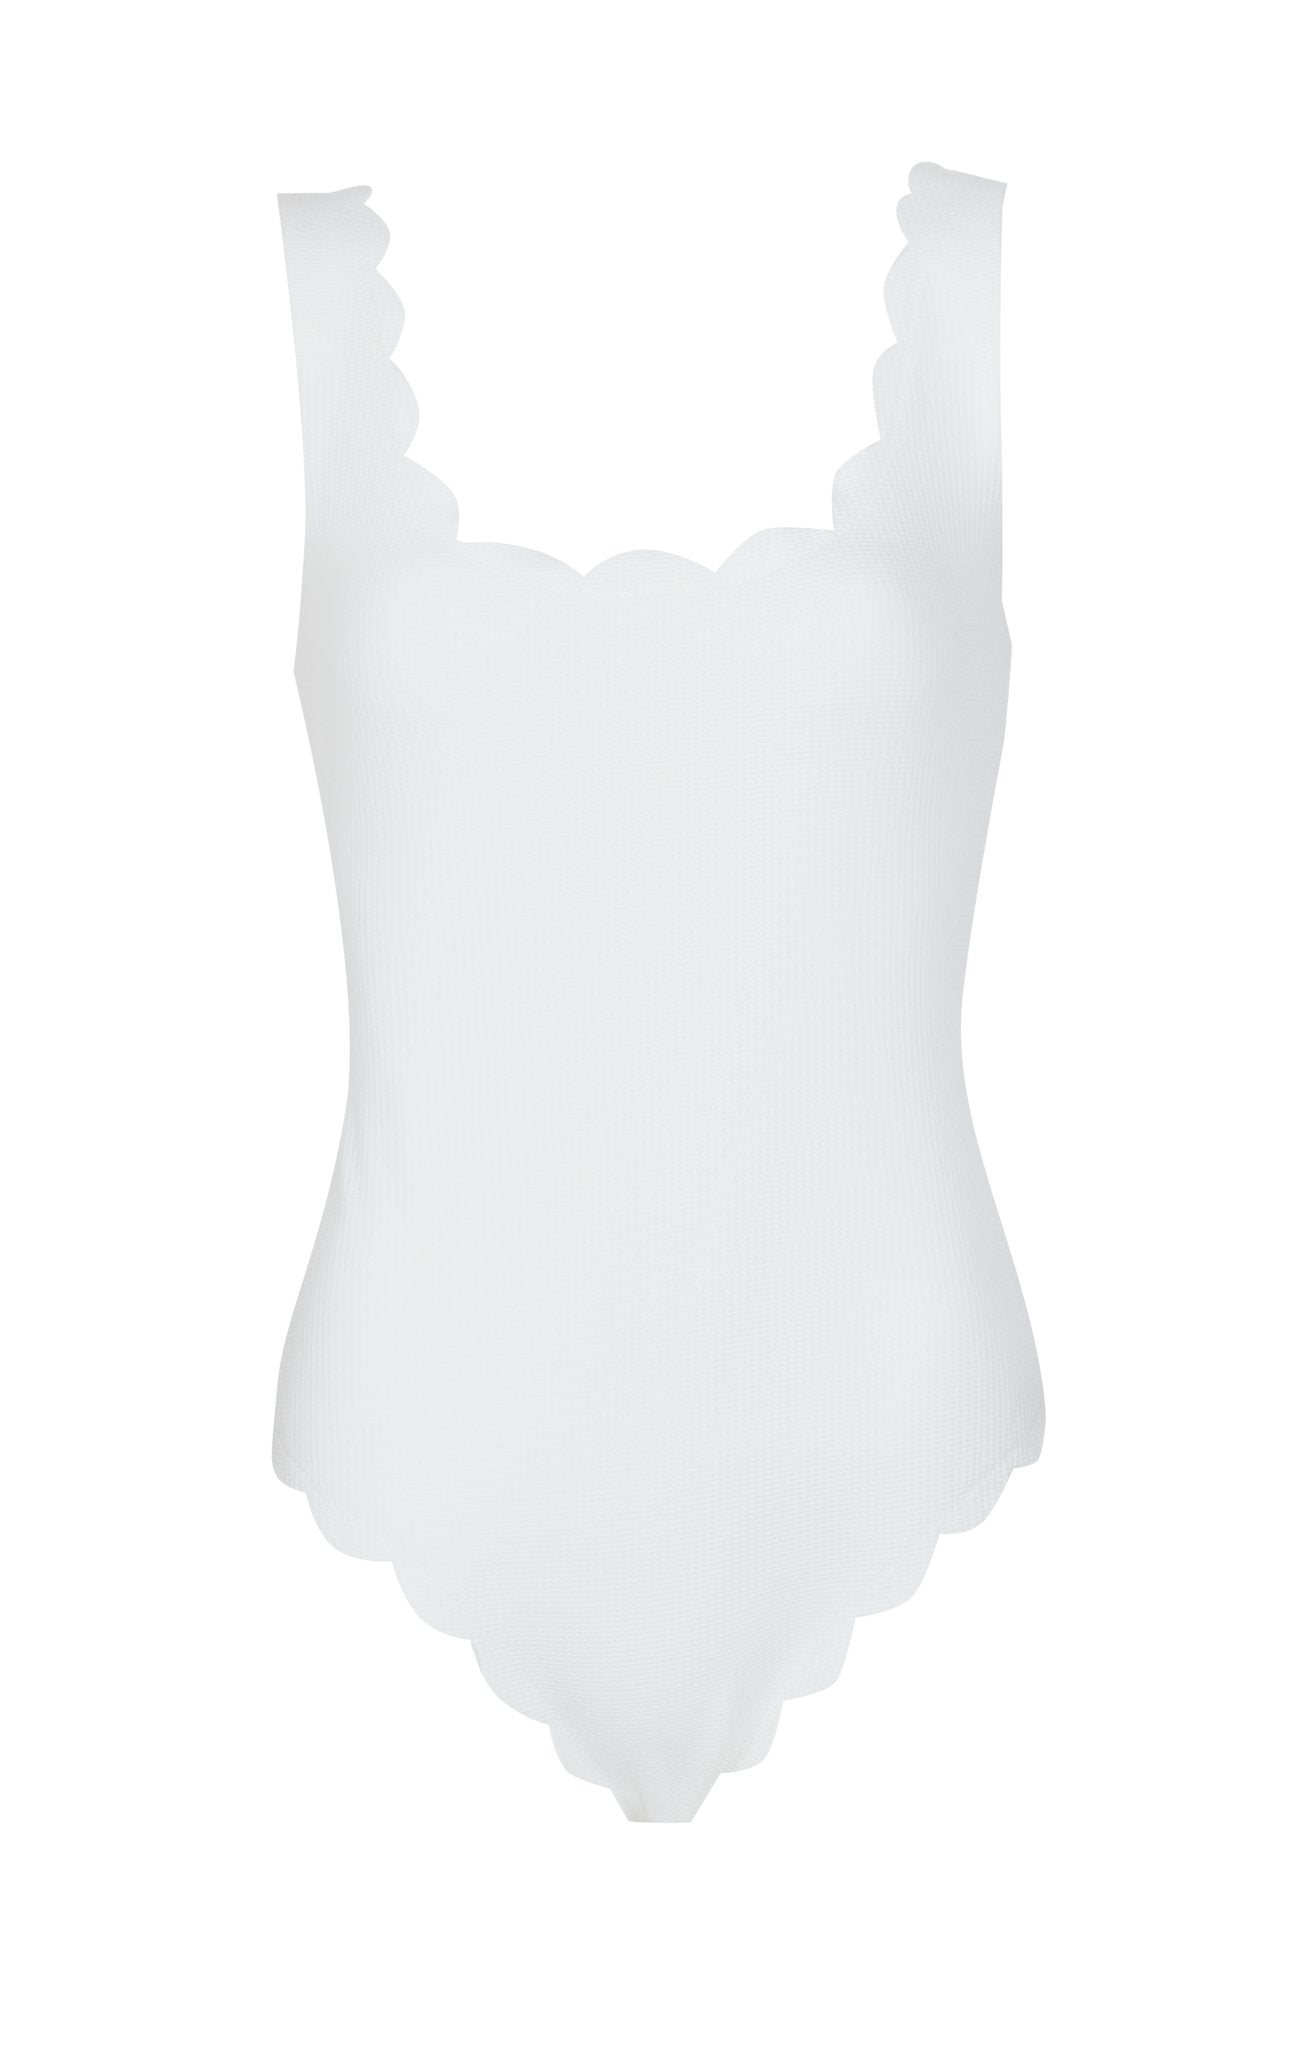 SWIMCLEAN Sustainable Palm Springs Maillot in Coconut